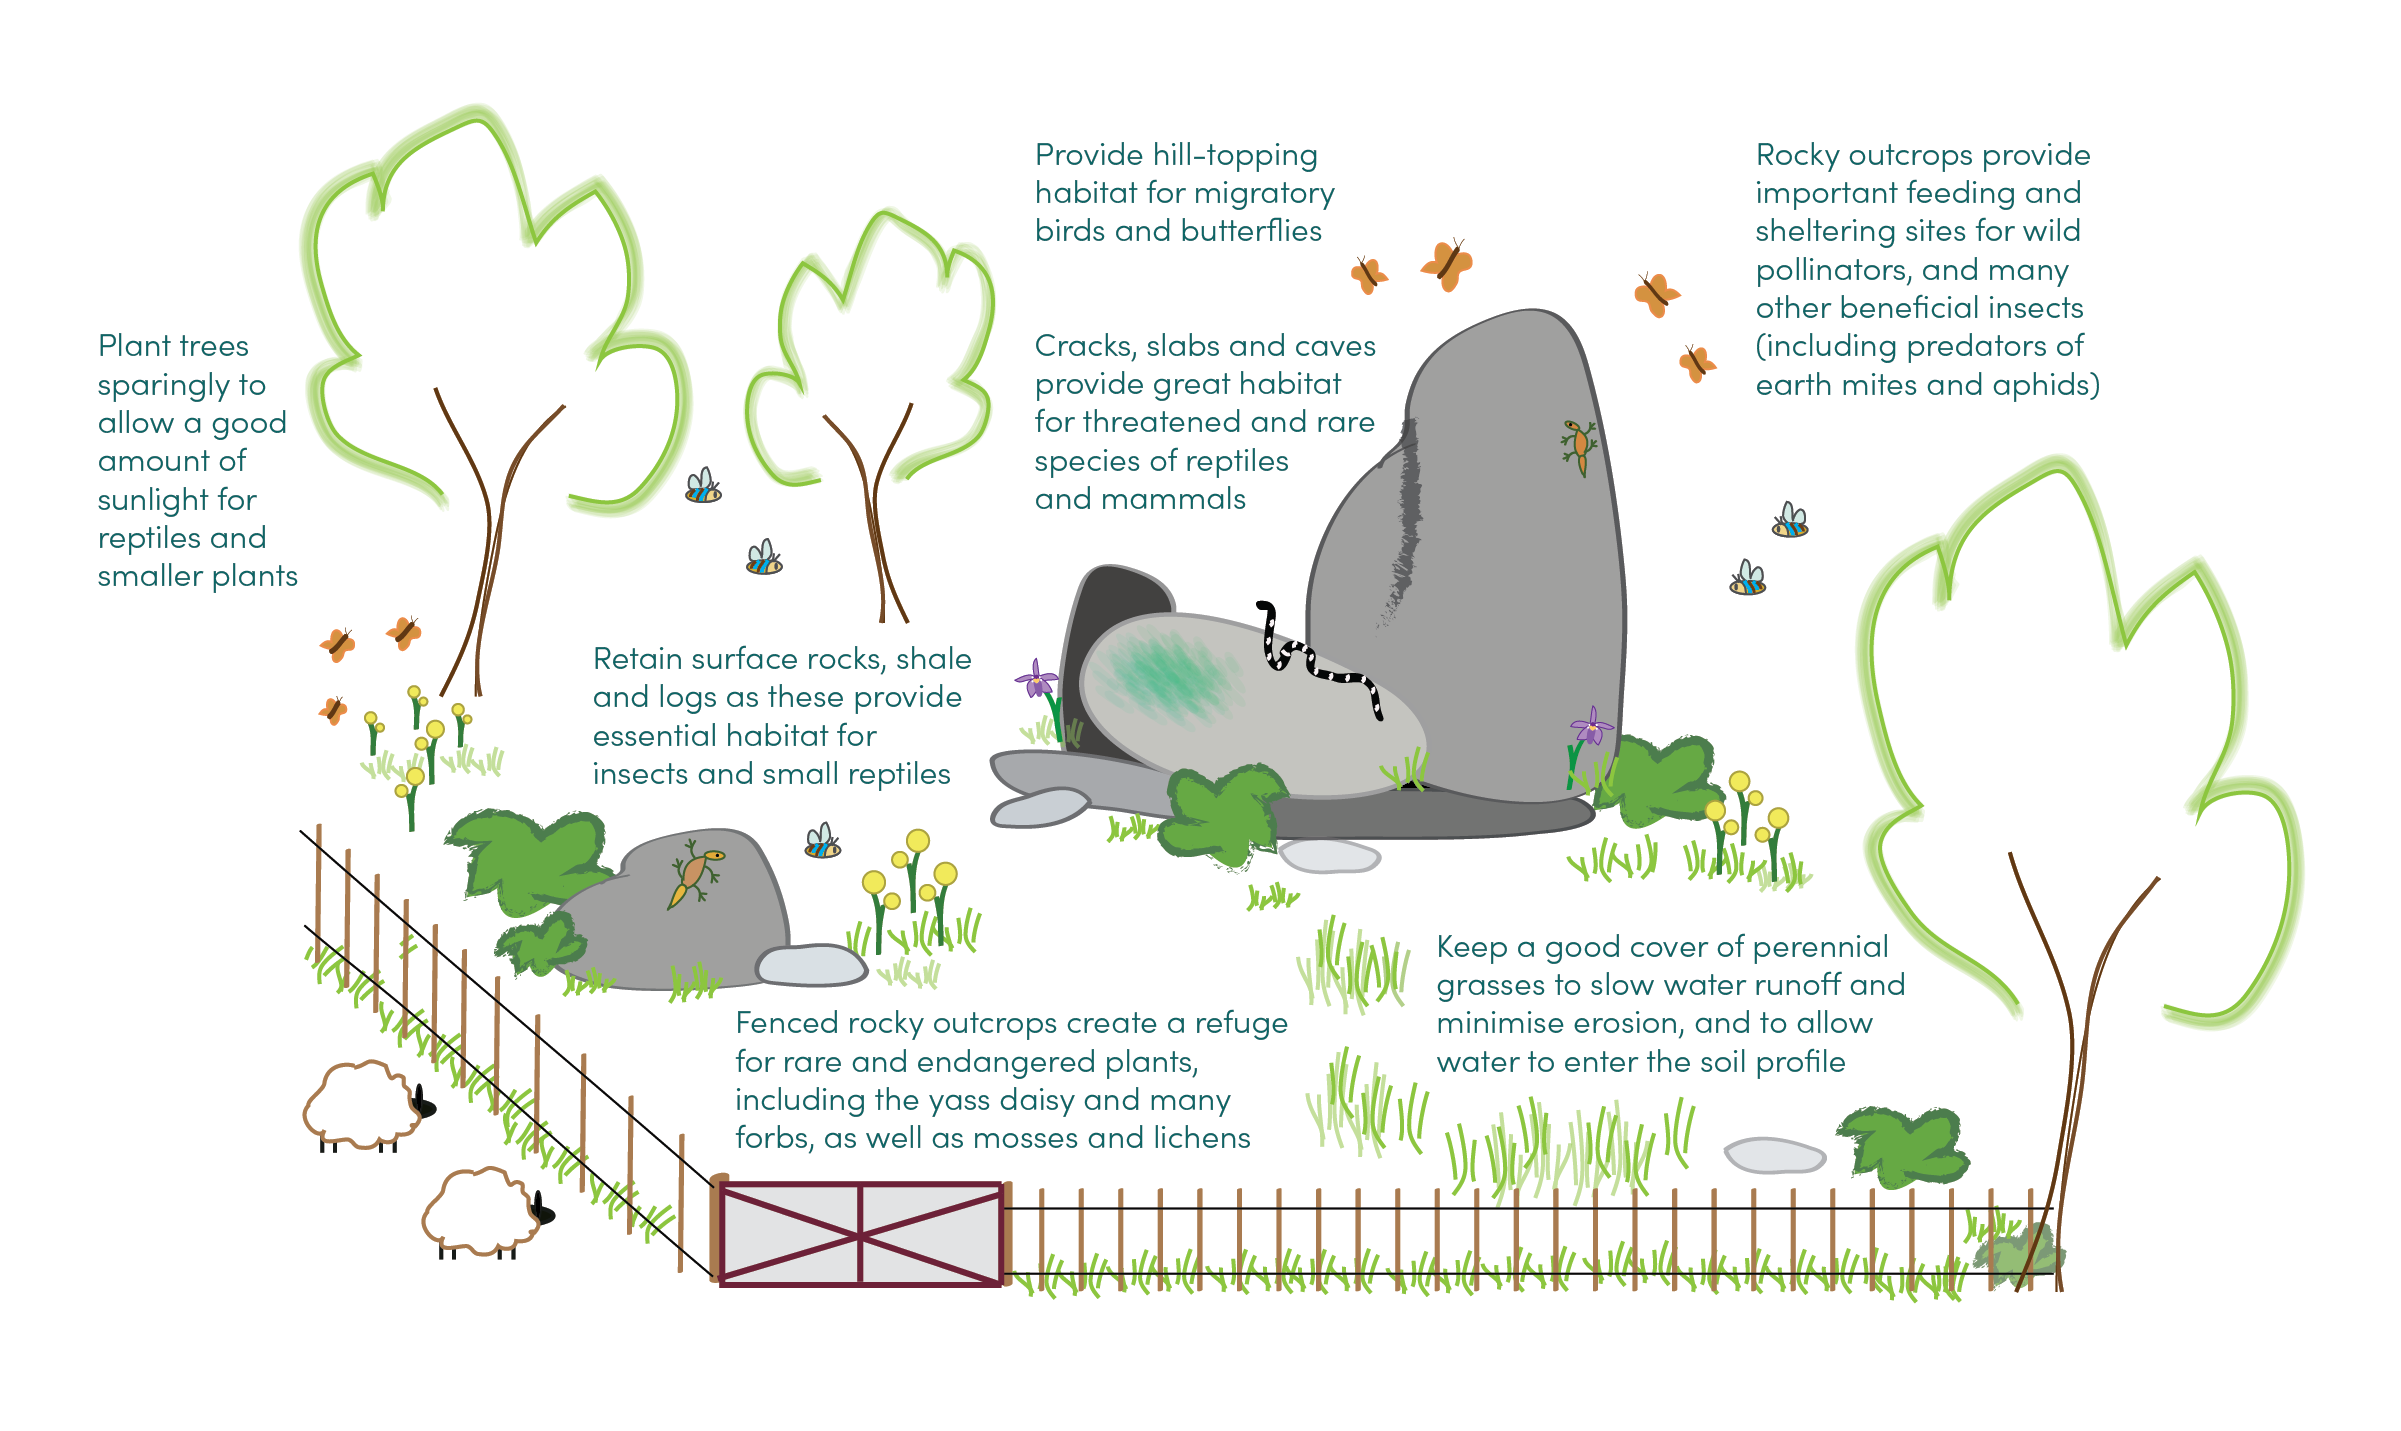 Diagram showing the fencing of a rocky outcrop